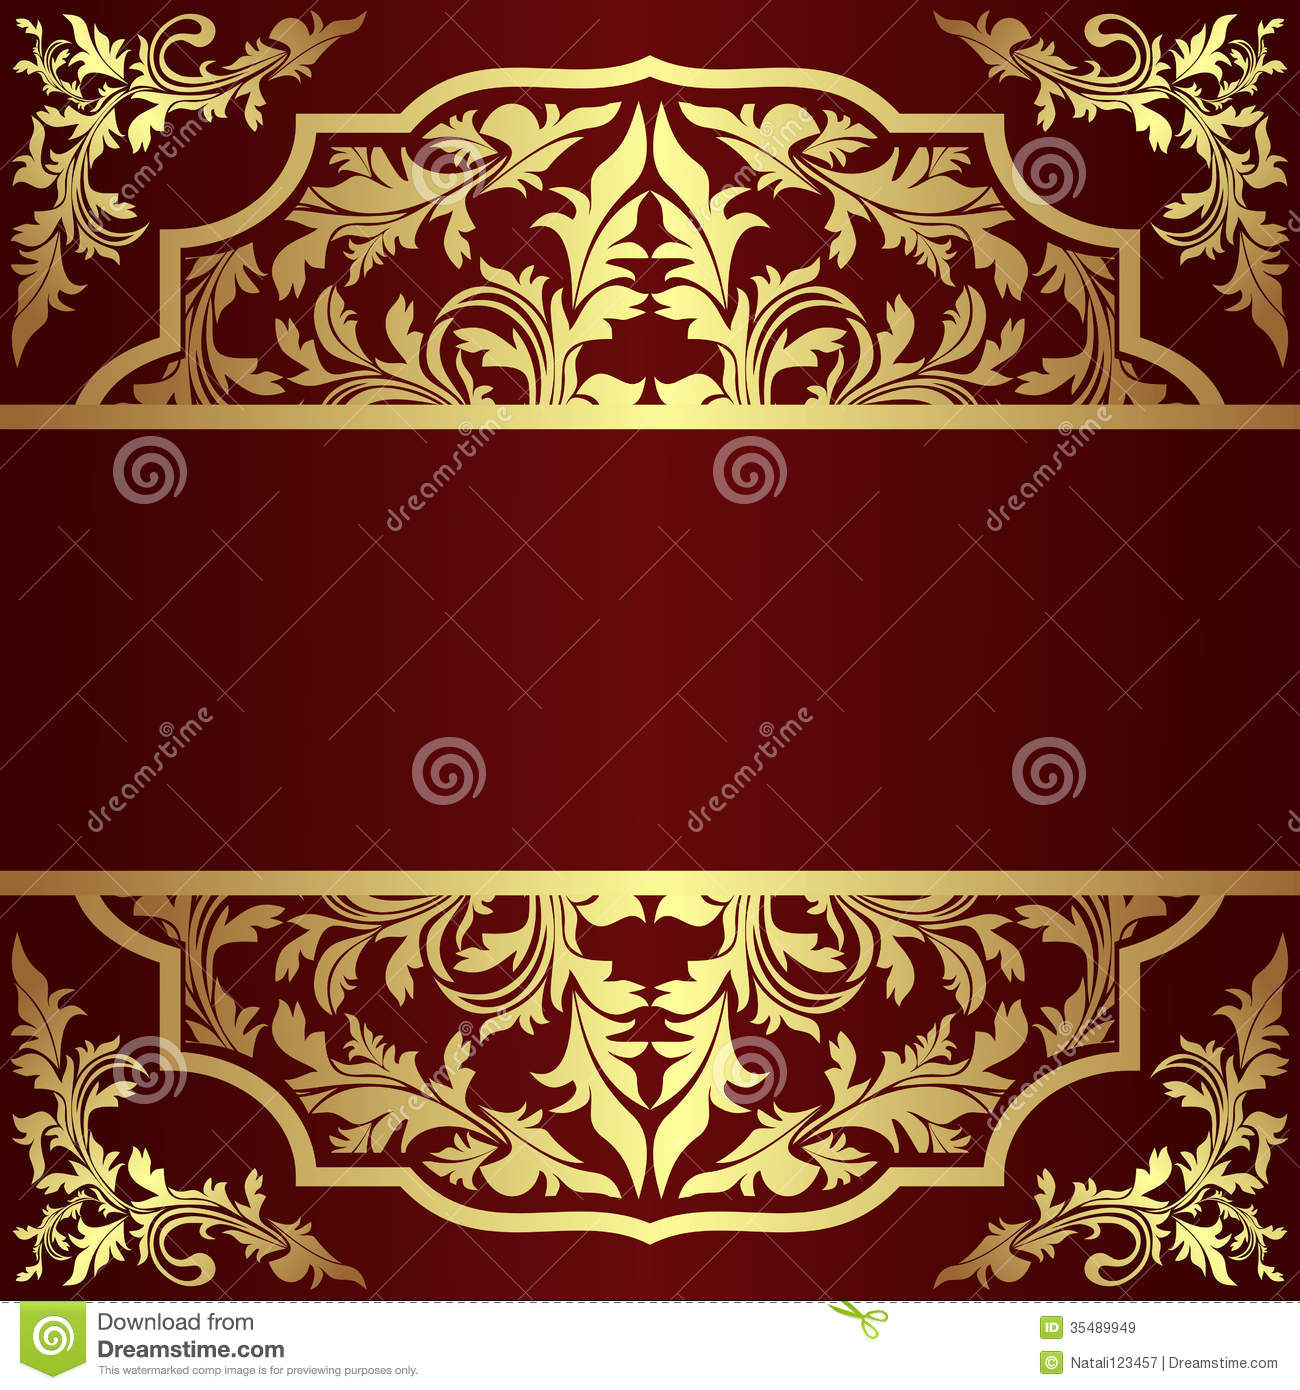 Invitation Design Template With Golden Royal Elements Royalty Free HRKPtkOp